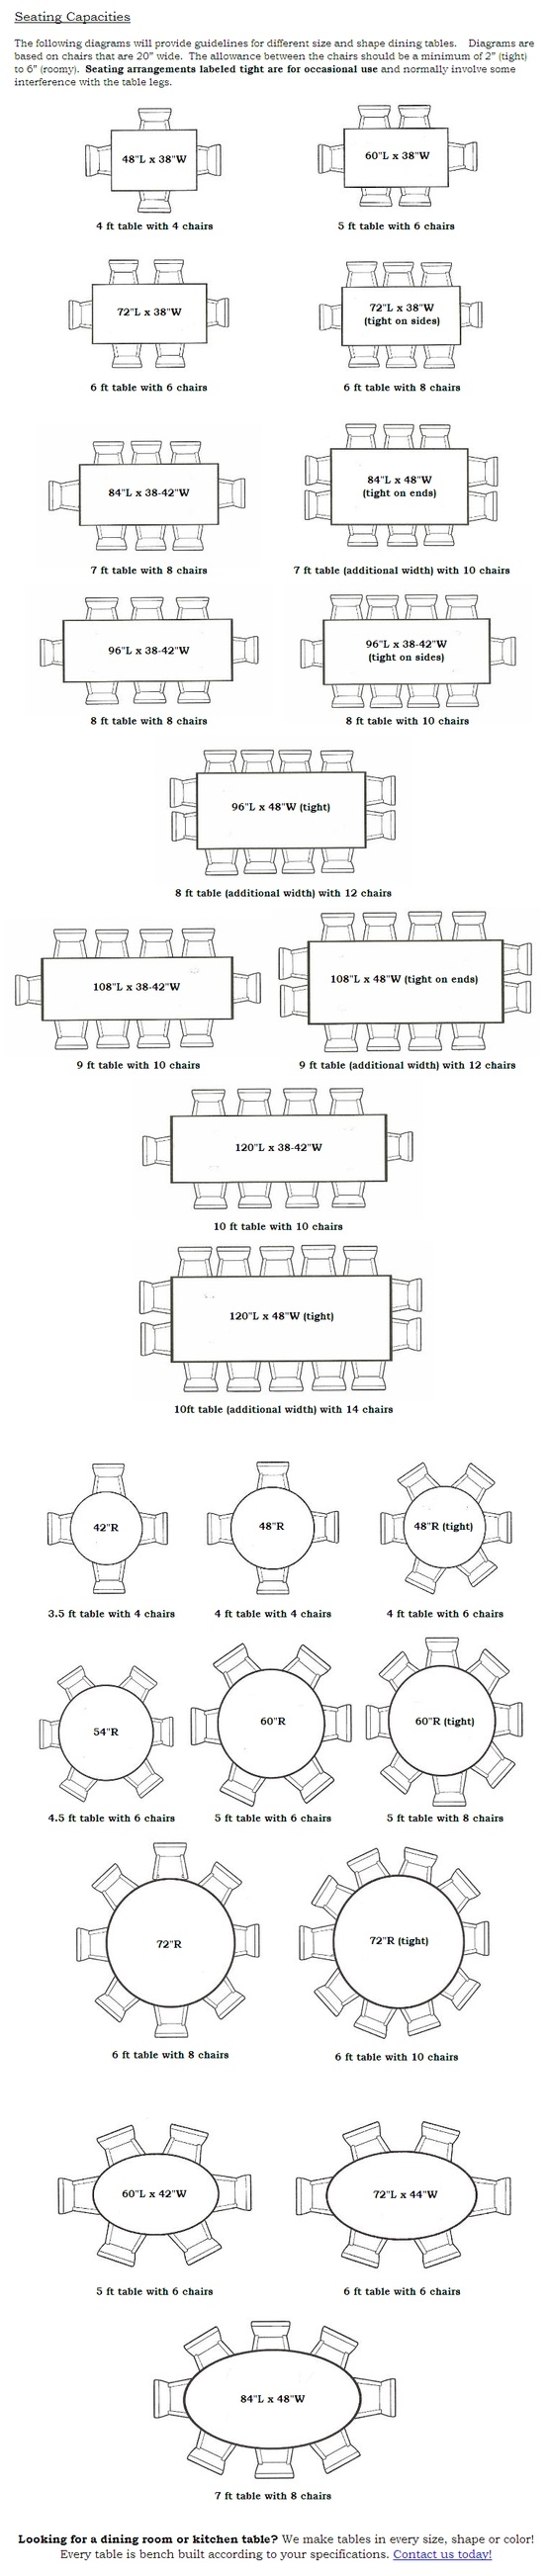 Dining Table Seating Capacities Chart By Size And Shape Allyson